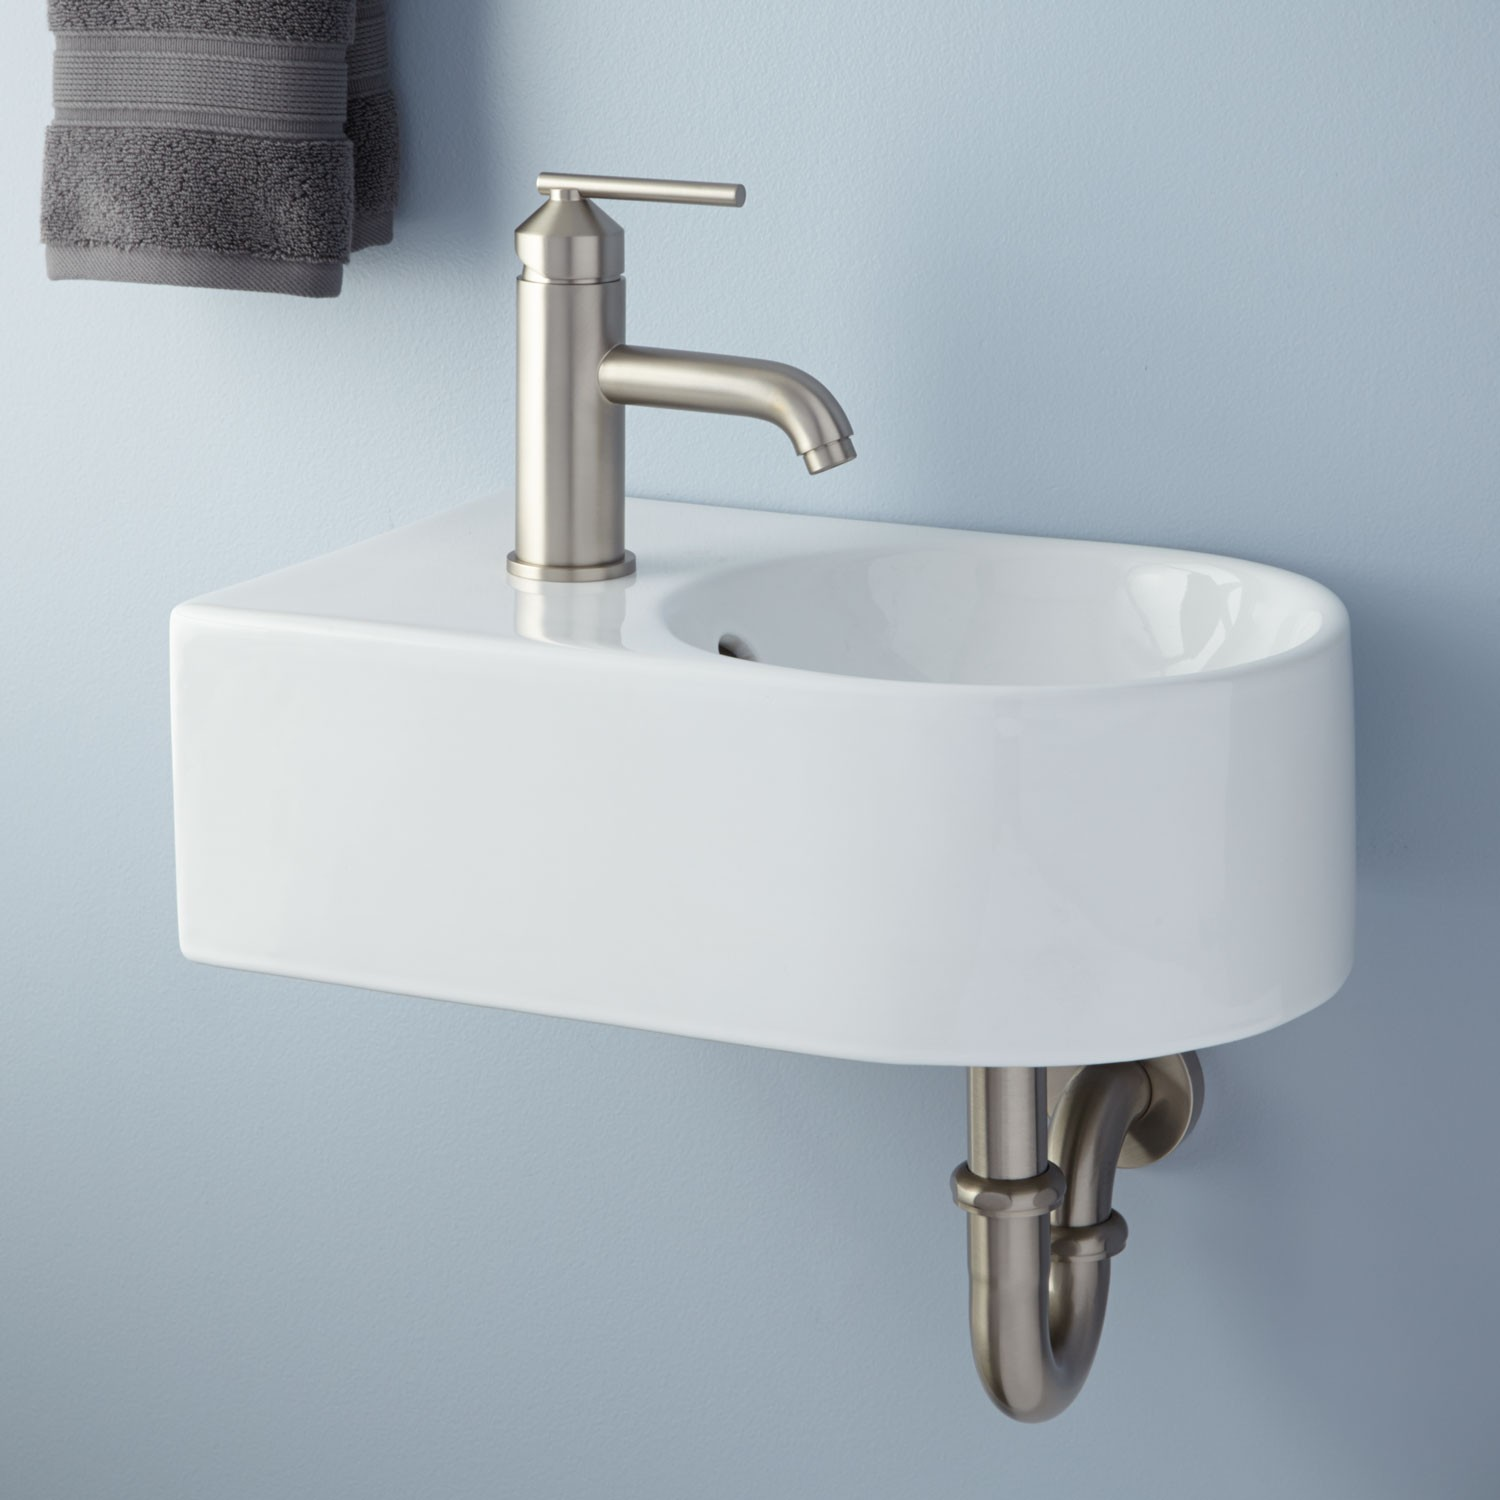 Attractive Small Wall Mounted Sink Idea With Brushed Iron Faucet